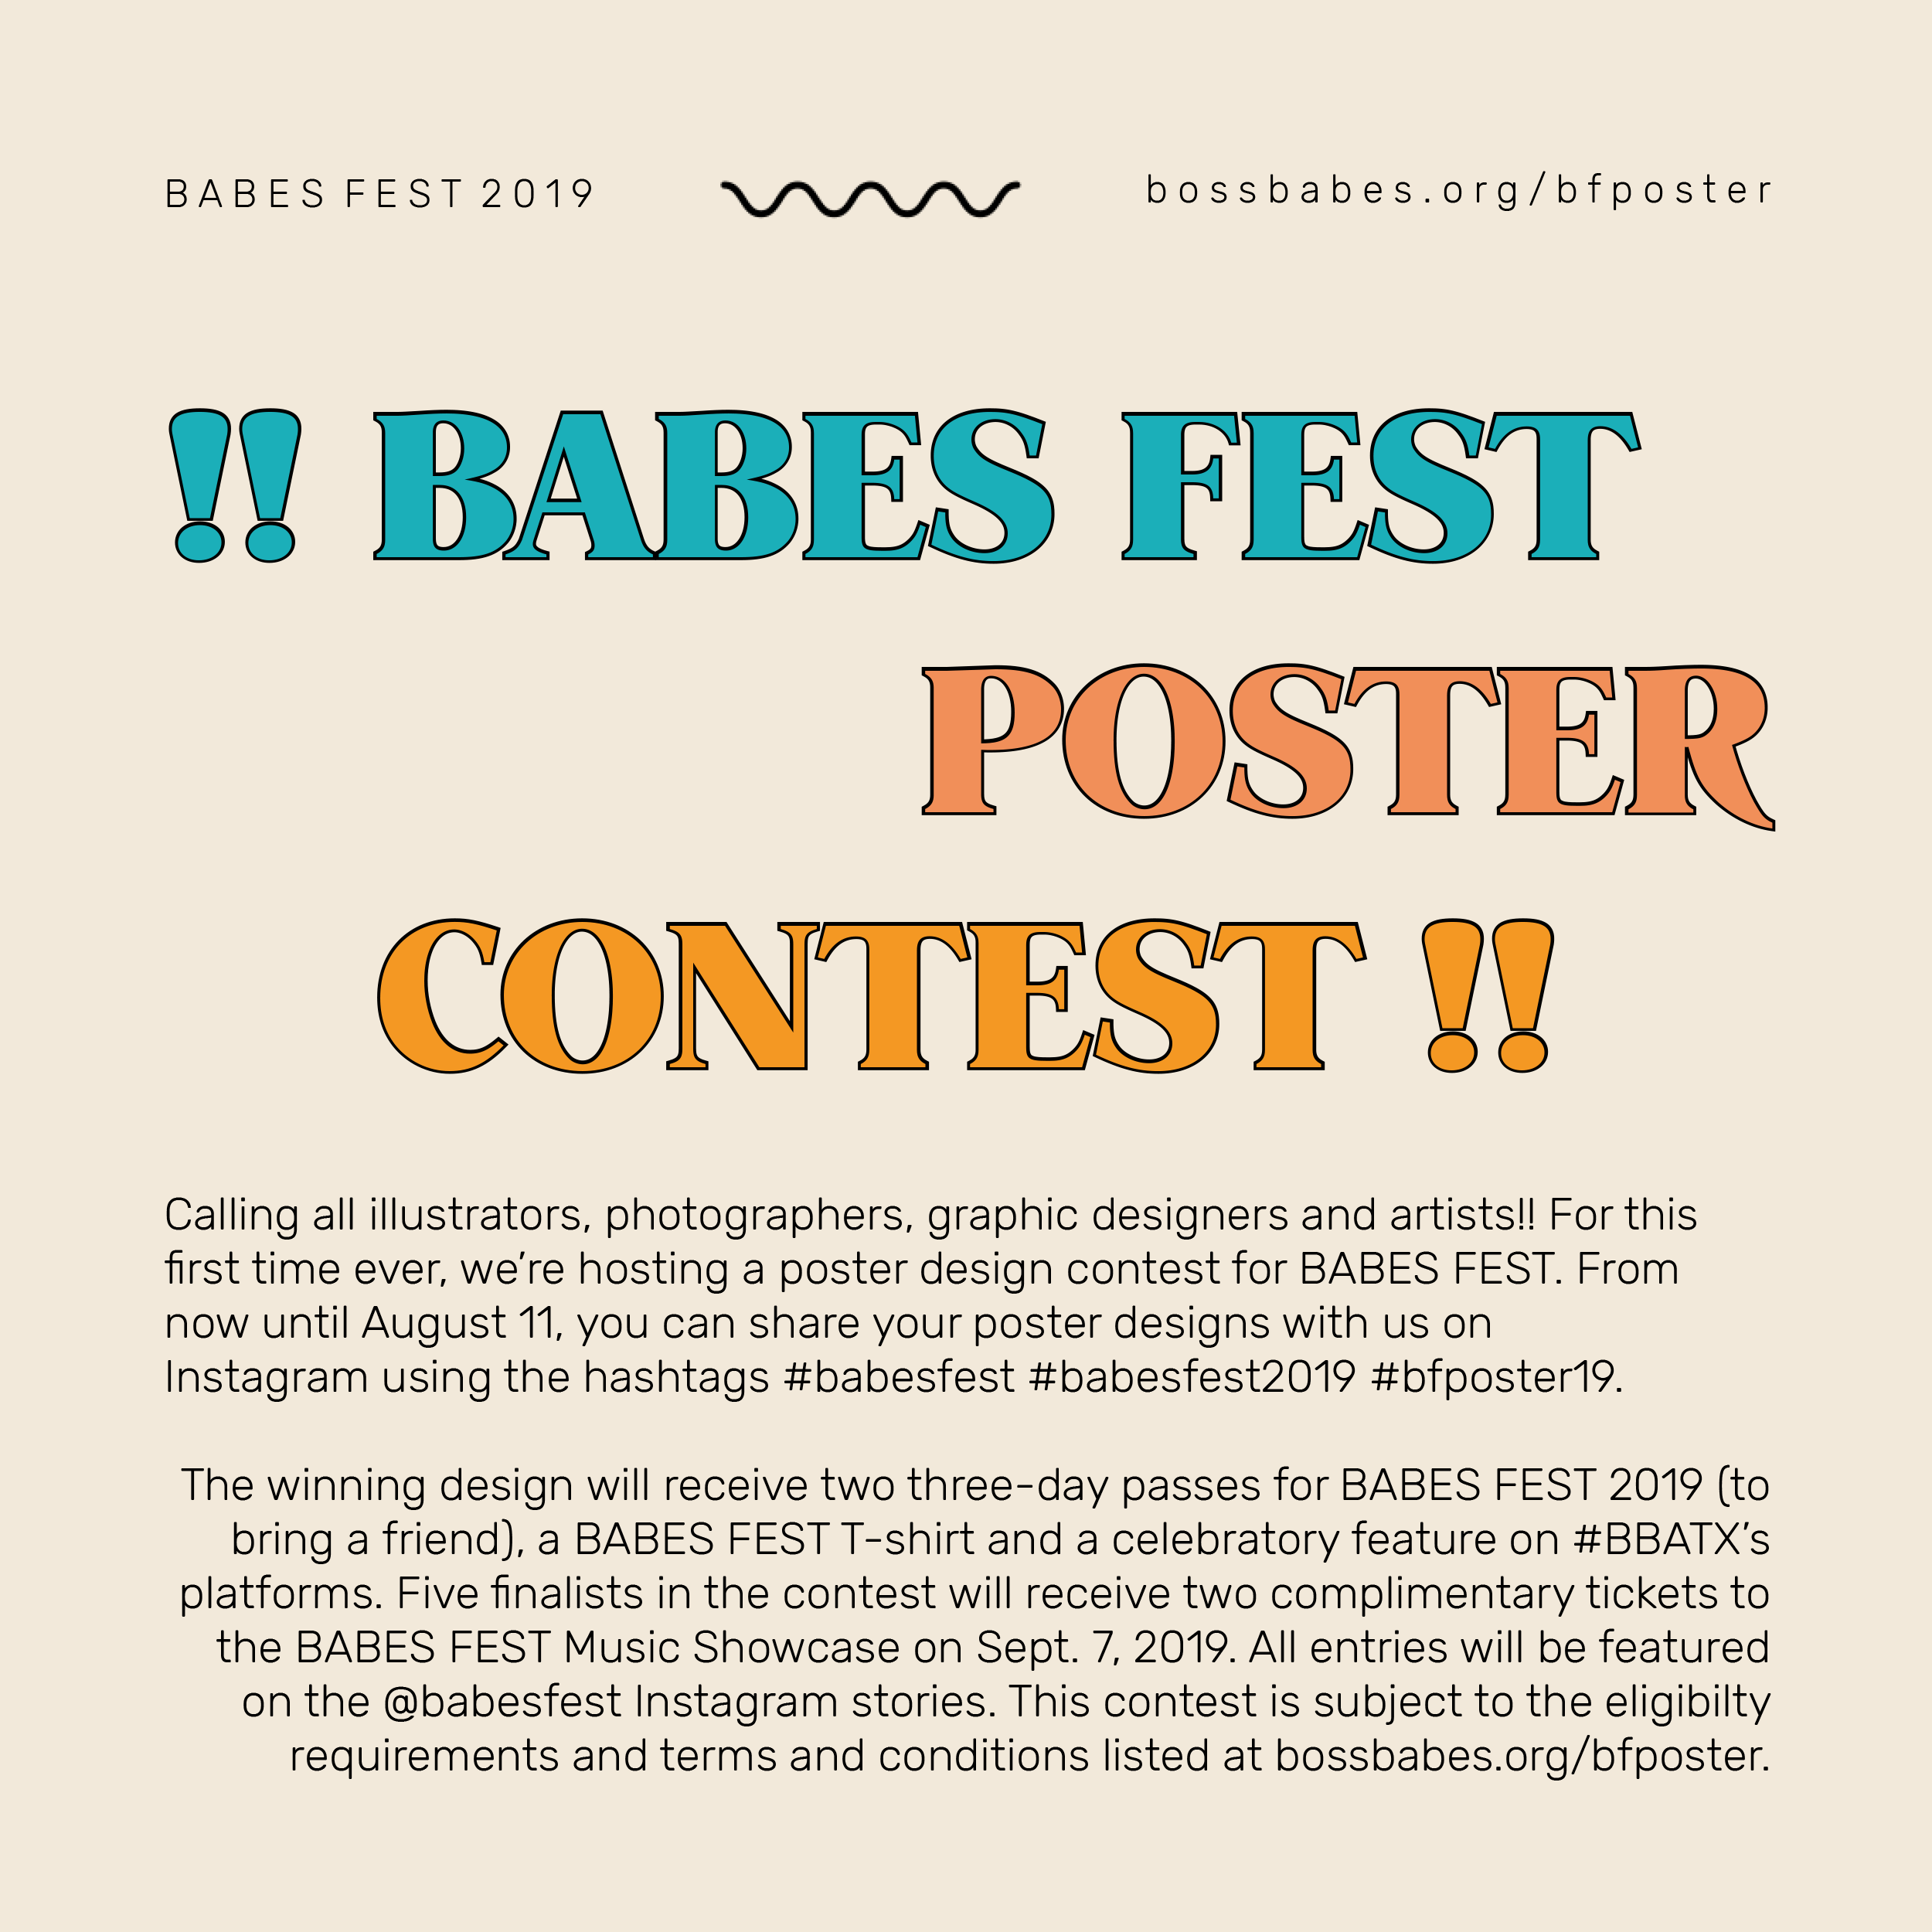 POSTERCONTEST_BF2019.png